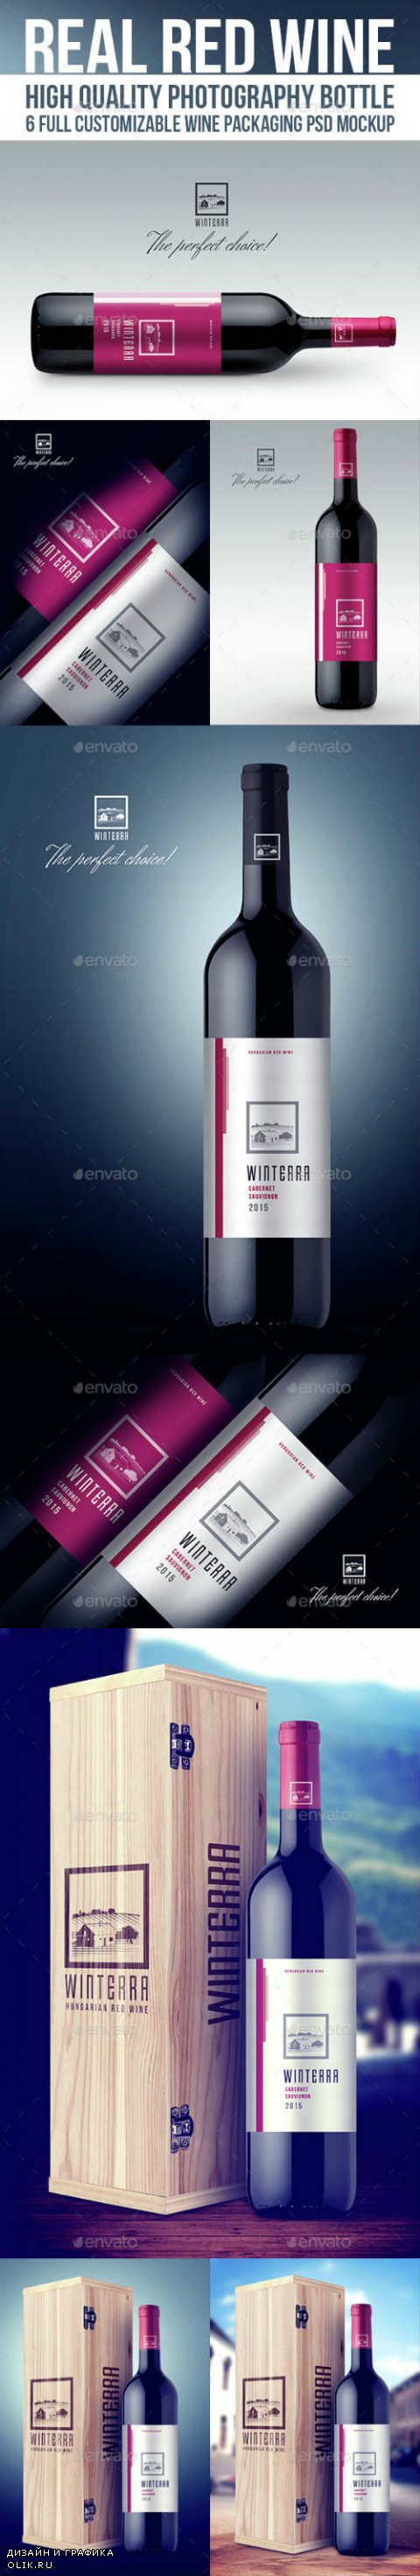 Real Red Wine Mockup 14596893